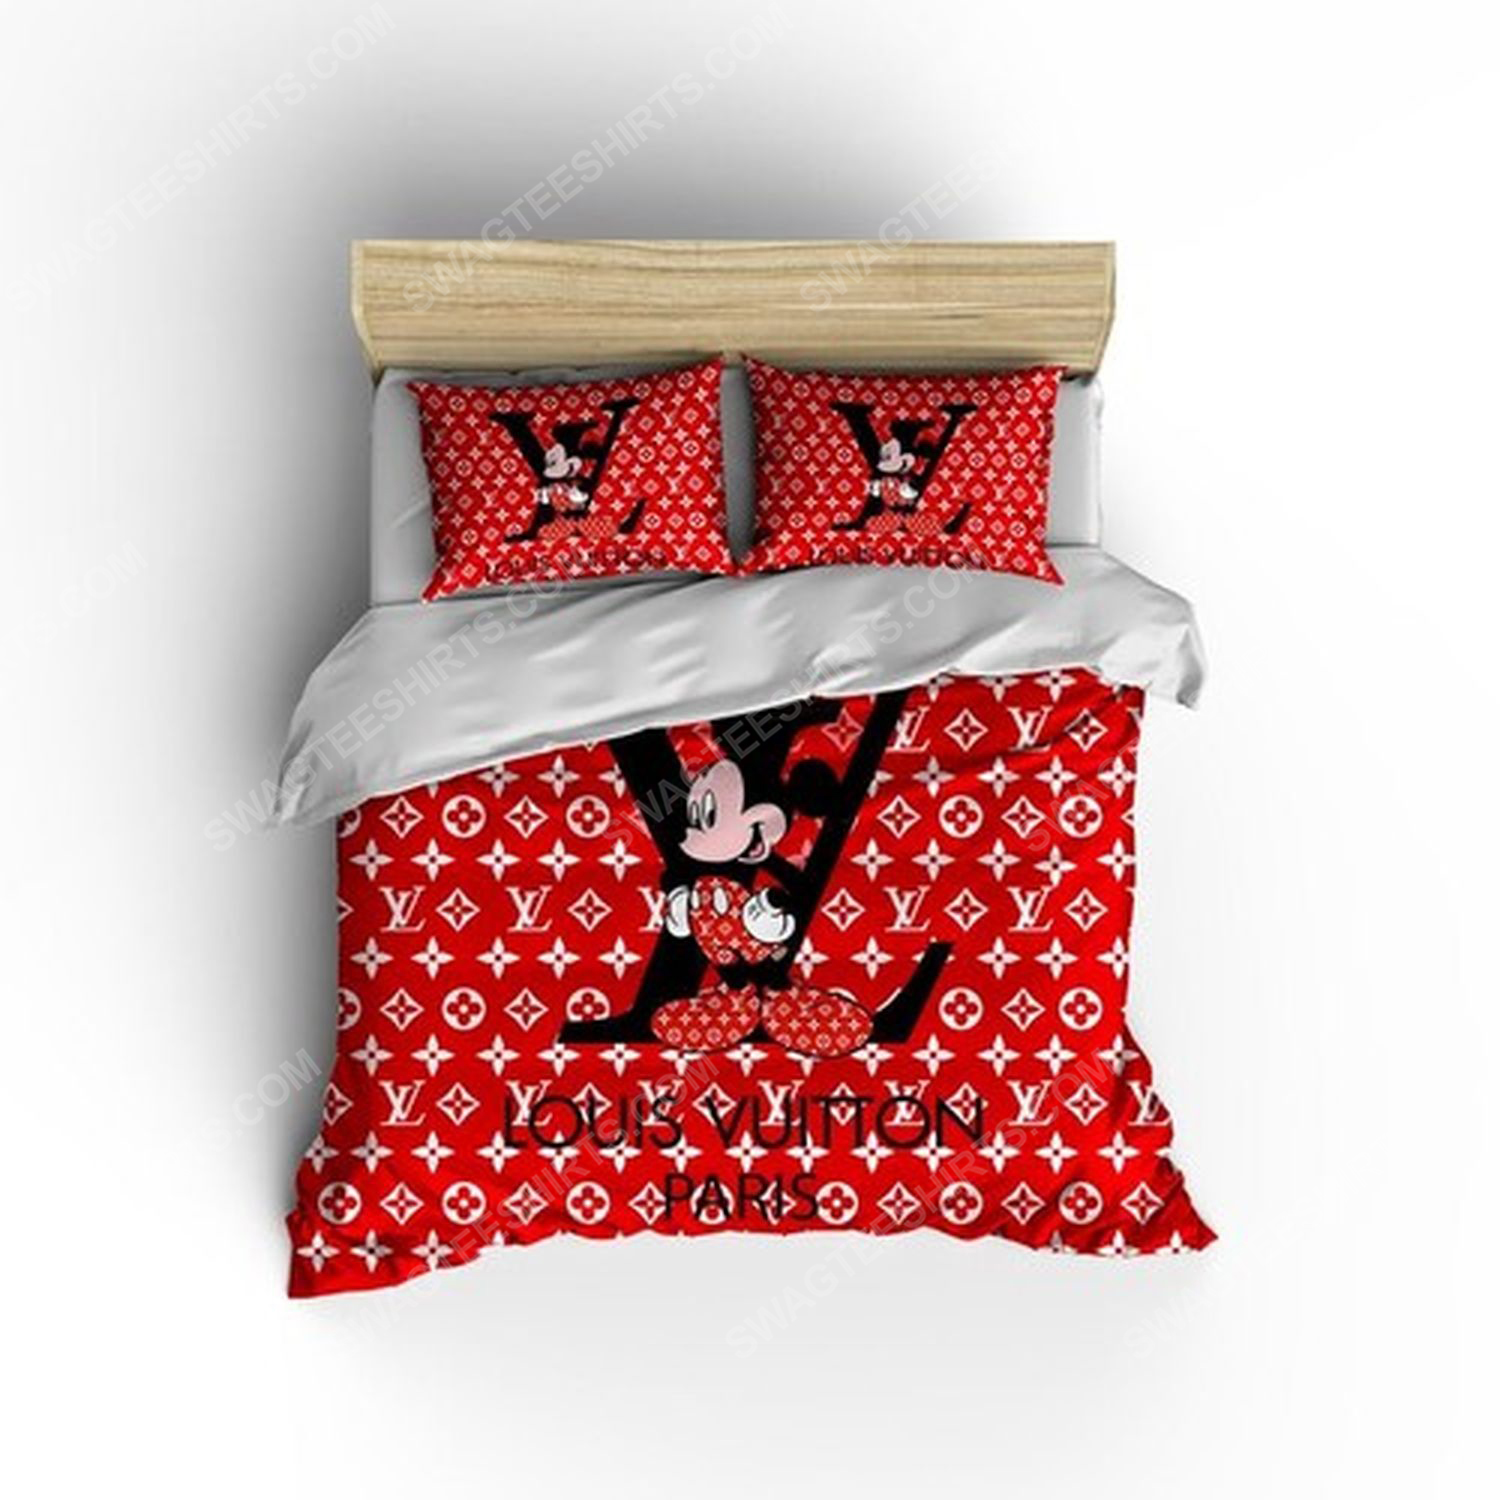 Lv and mickey mouse full print duvet cover bedding set